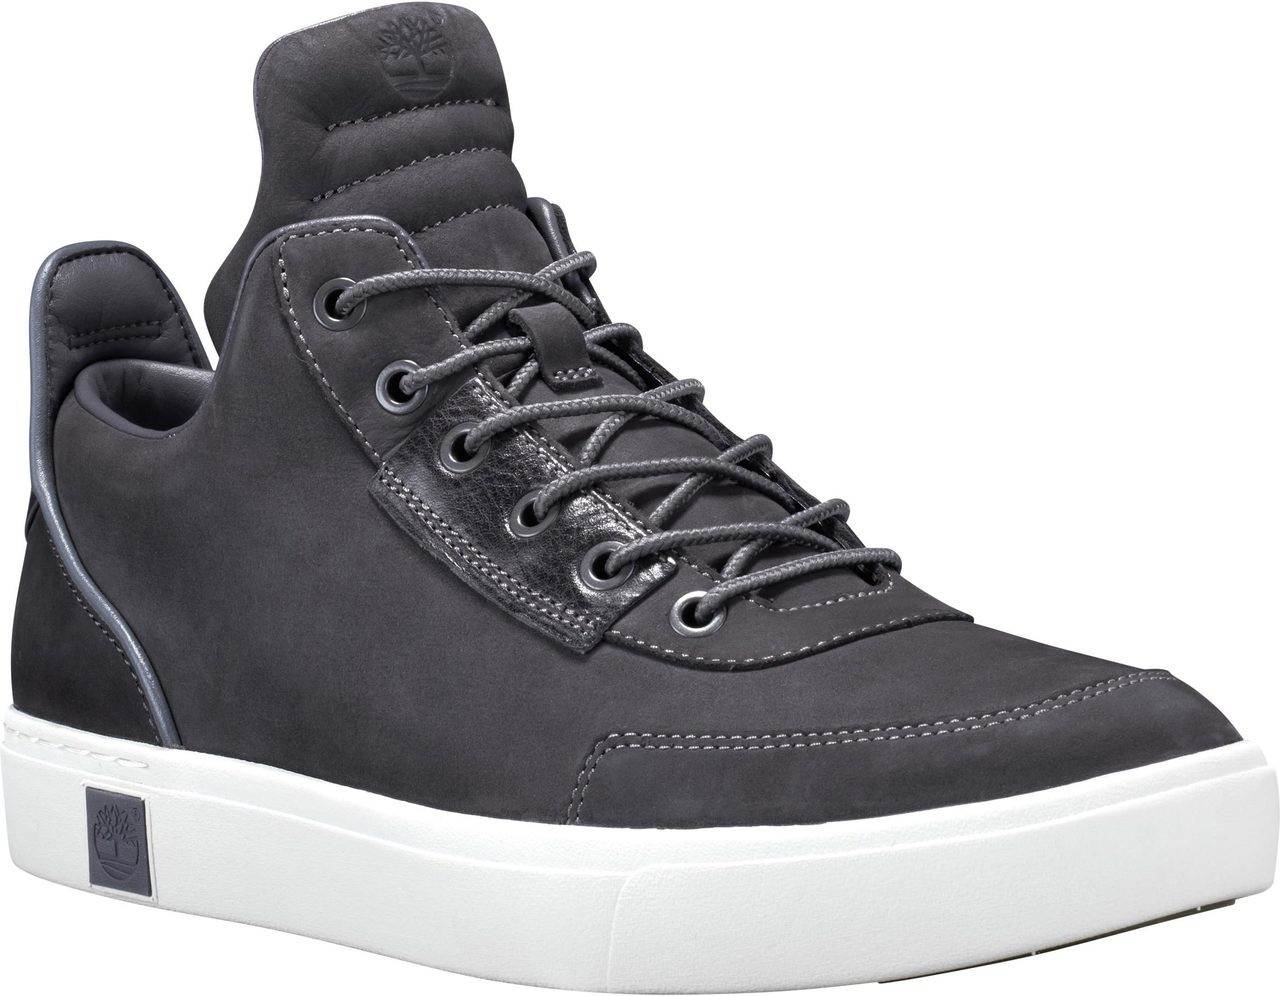 1891989a72c8 Timberland Men s Amherst High Top Chukka - FREE Shipping   FREE ...